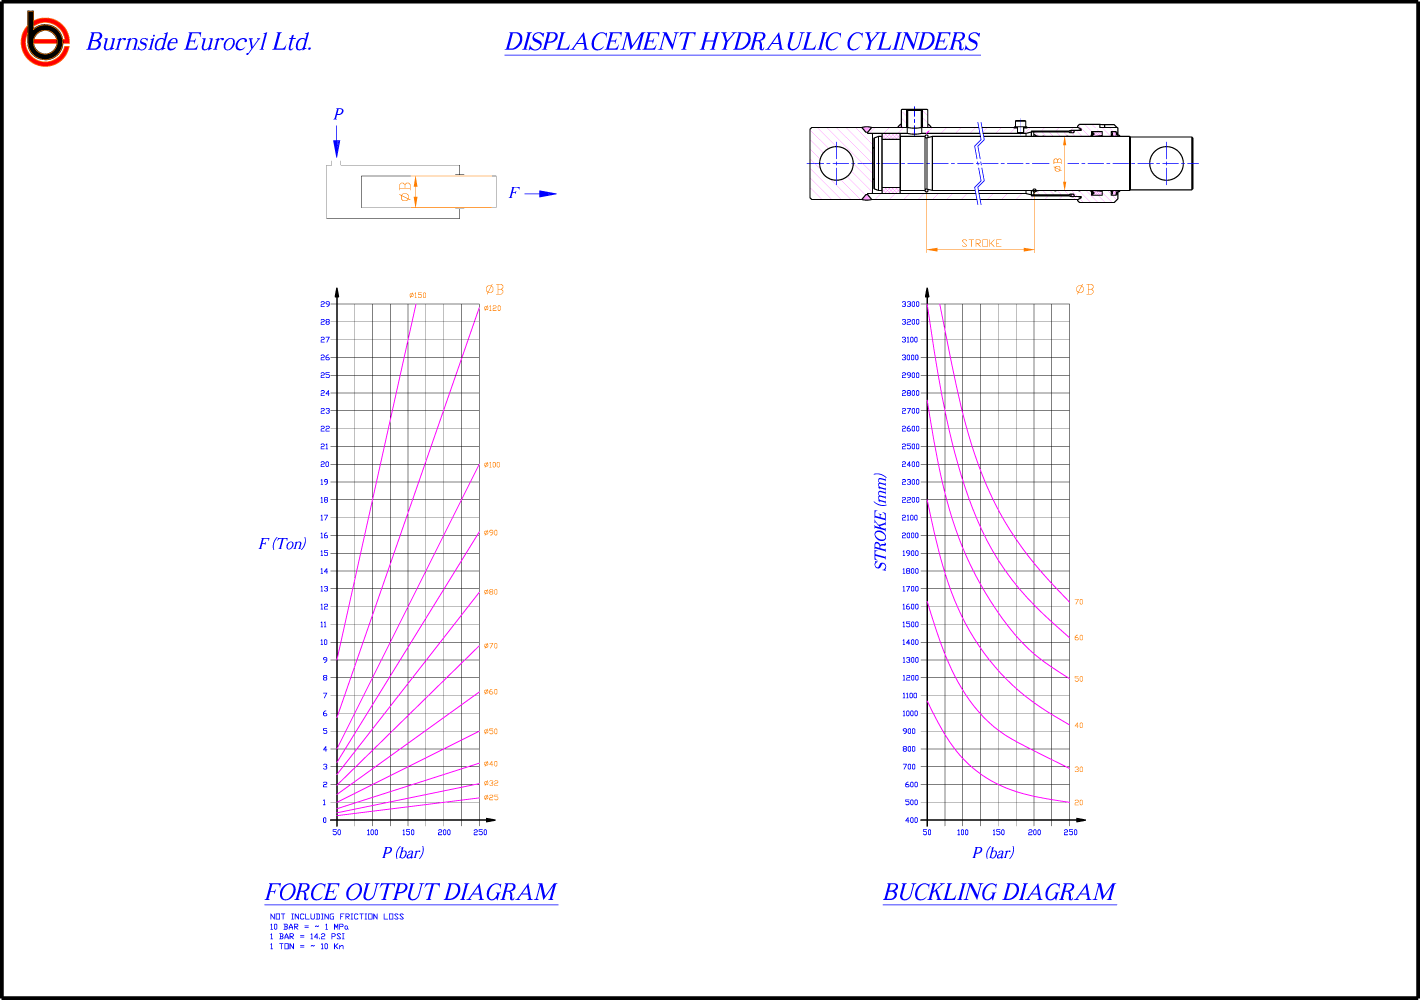 Lift Cylinders – Displacement Cylinders | Burnside Eurocyl